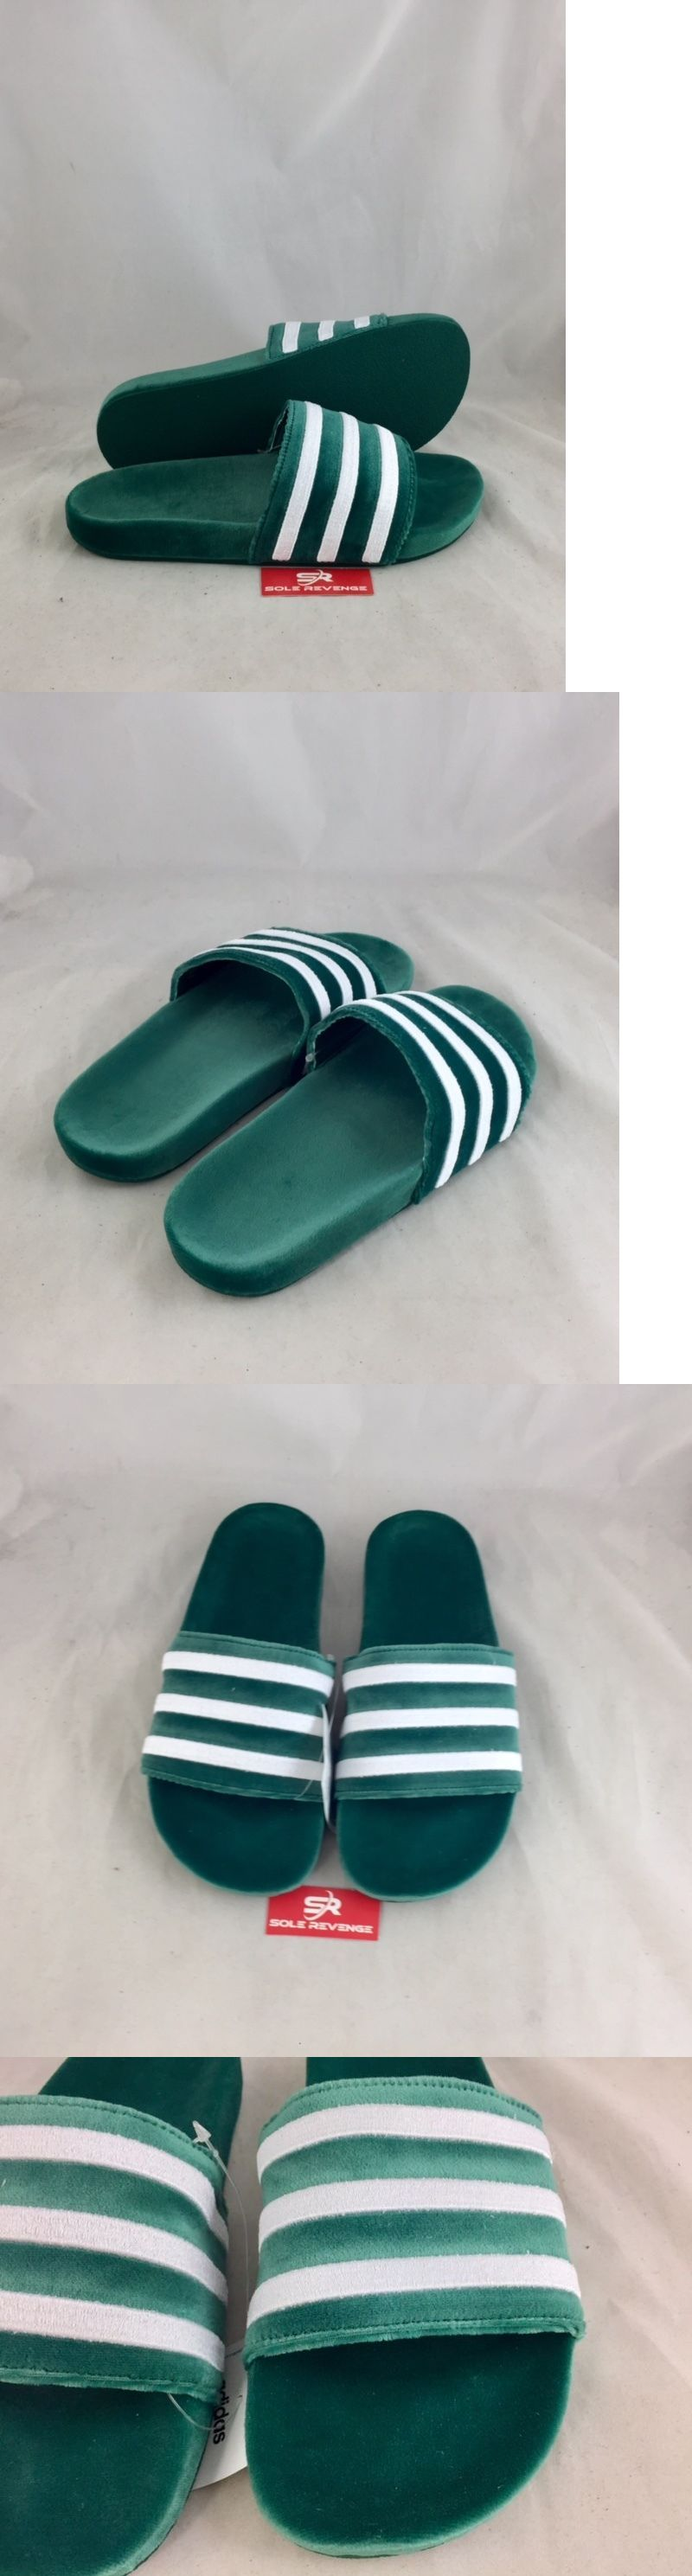 3a4a90412953 Sandals 11504  New Mens Adidas Originals Velvet Adilette Green White By9907 Sandals  Slides C1 -  BUY IT NOW ONLY   54.99 on  eBay  sandals  adidas ...